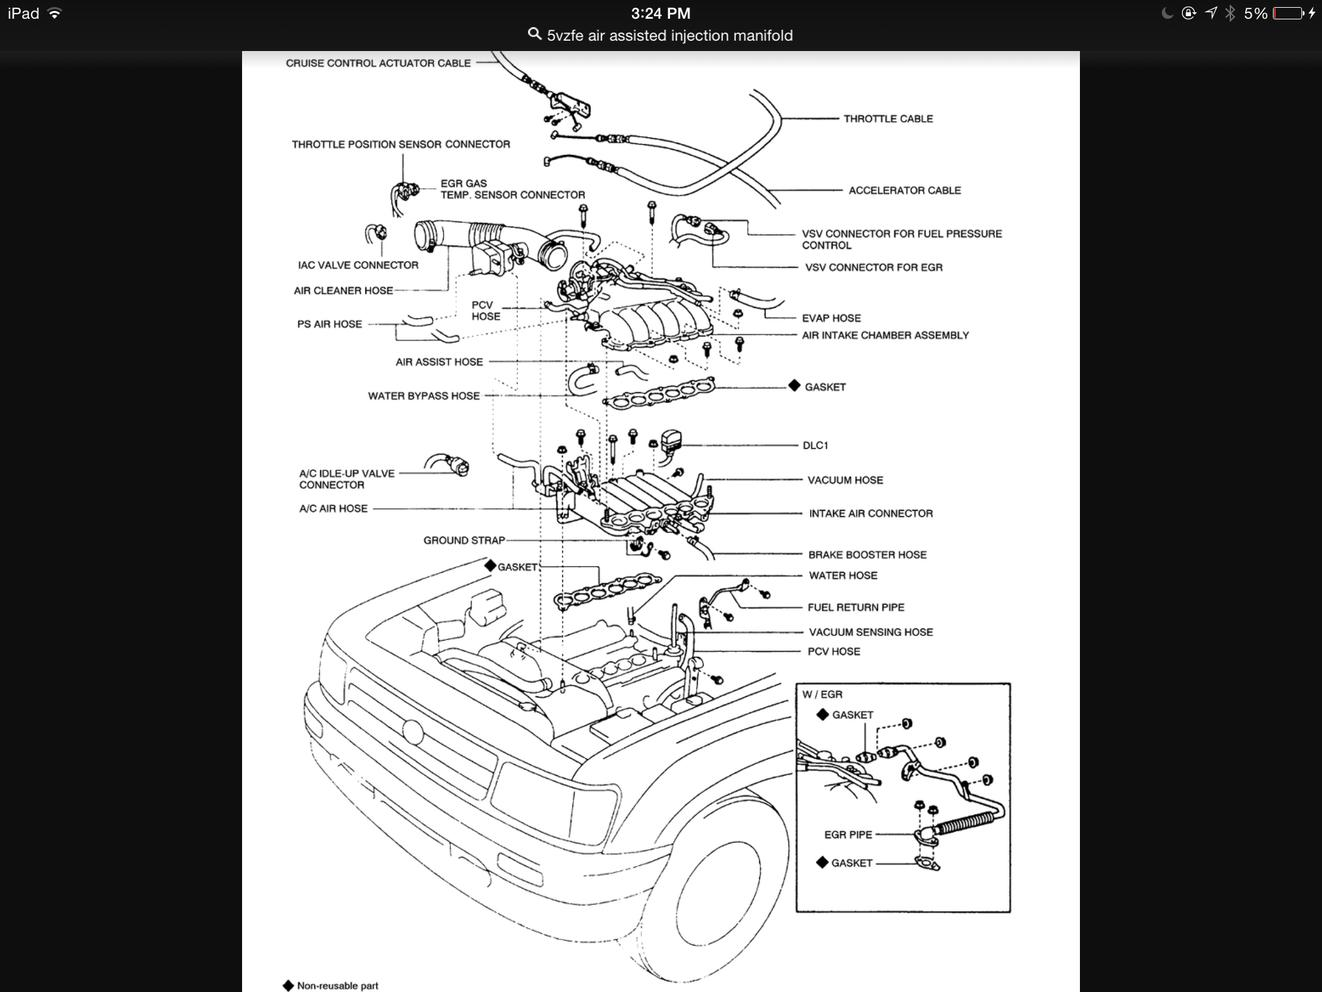 How To Disable Injector Air Assist Toyota 4runner Forum Largest 2000 Idle Control Valve Attached Injection 1188 Kb